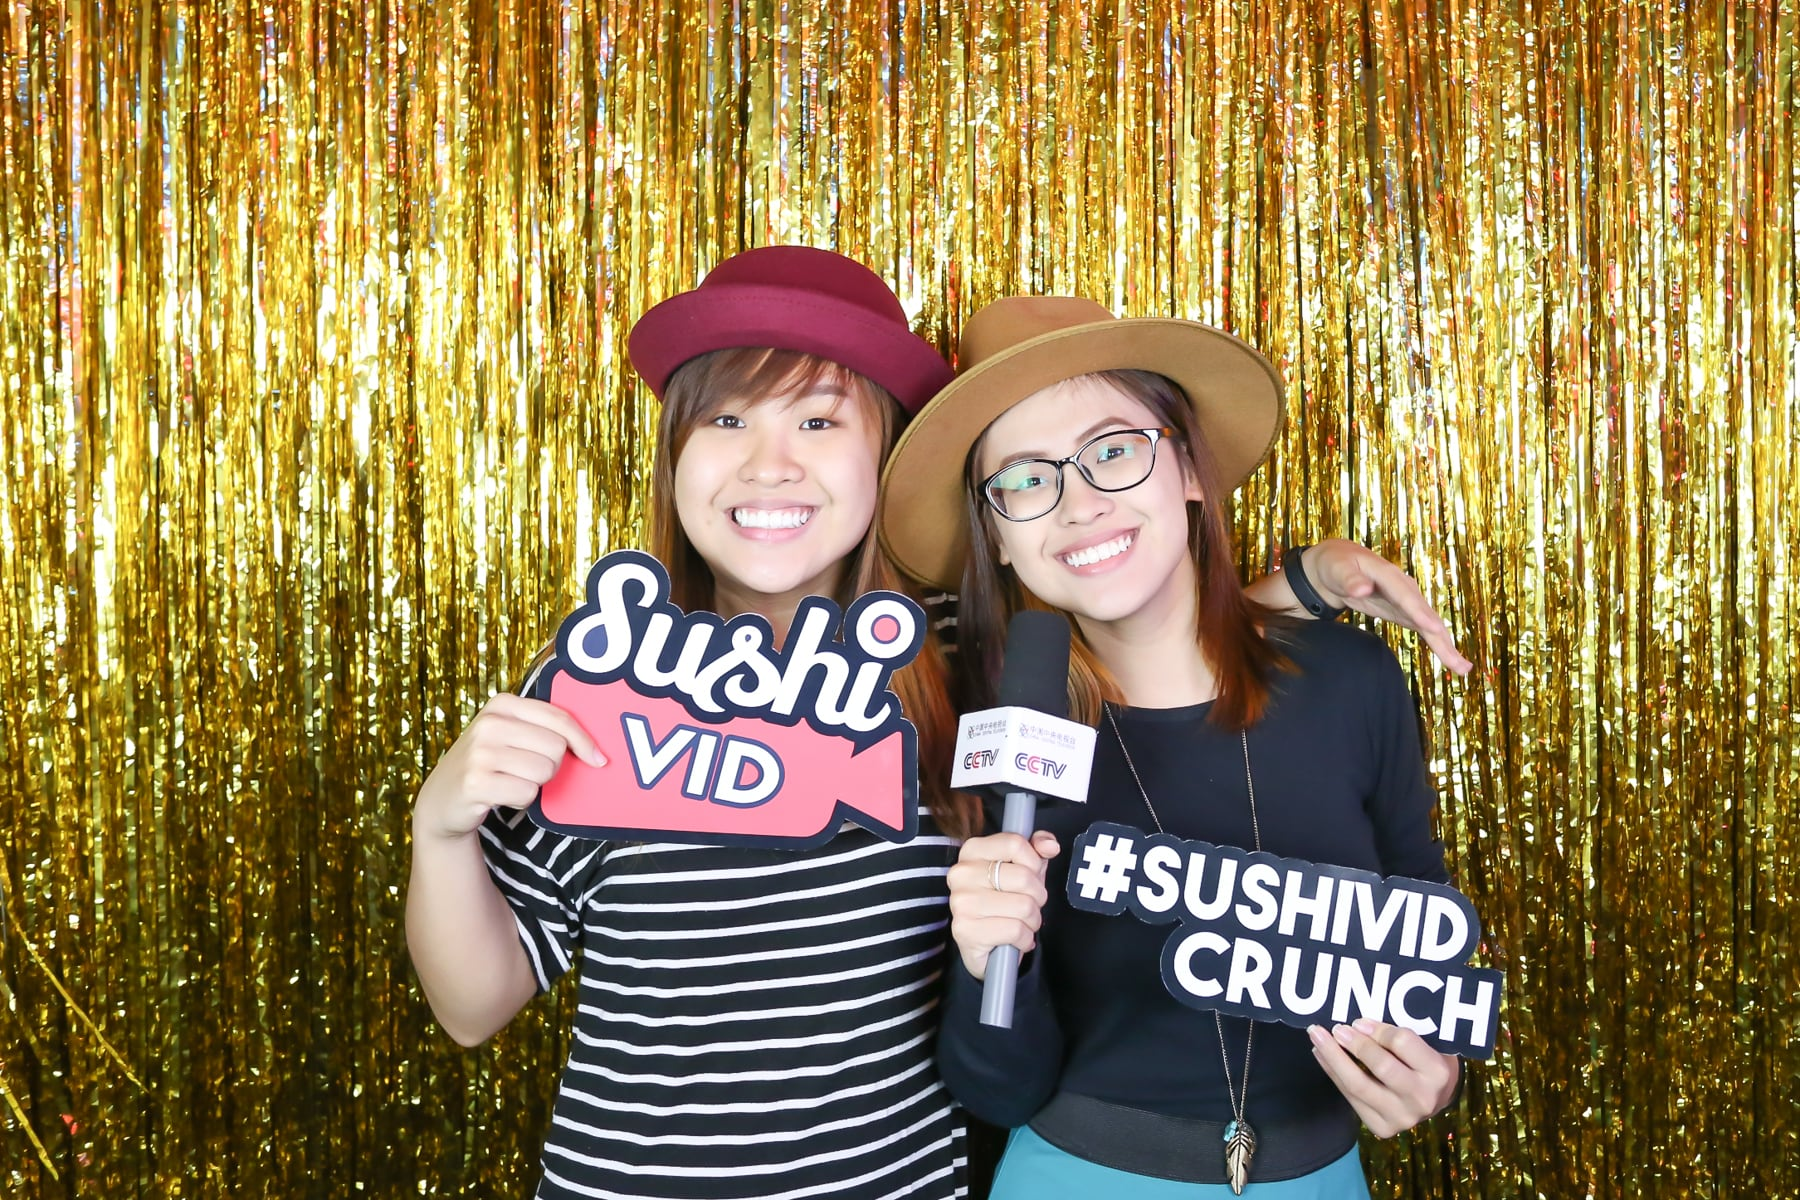 Sushivid+crunch+tagbooth+34